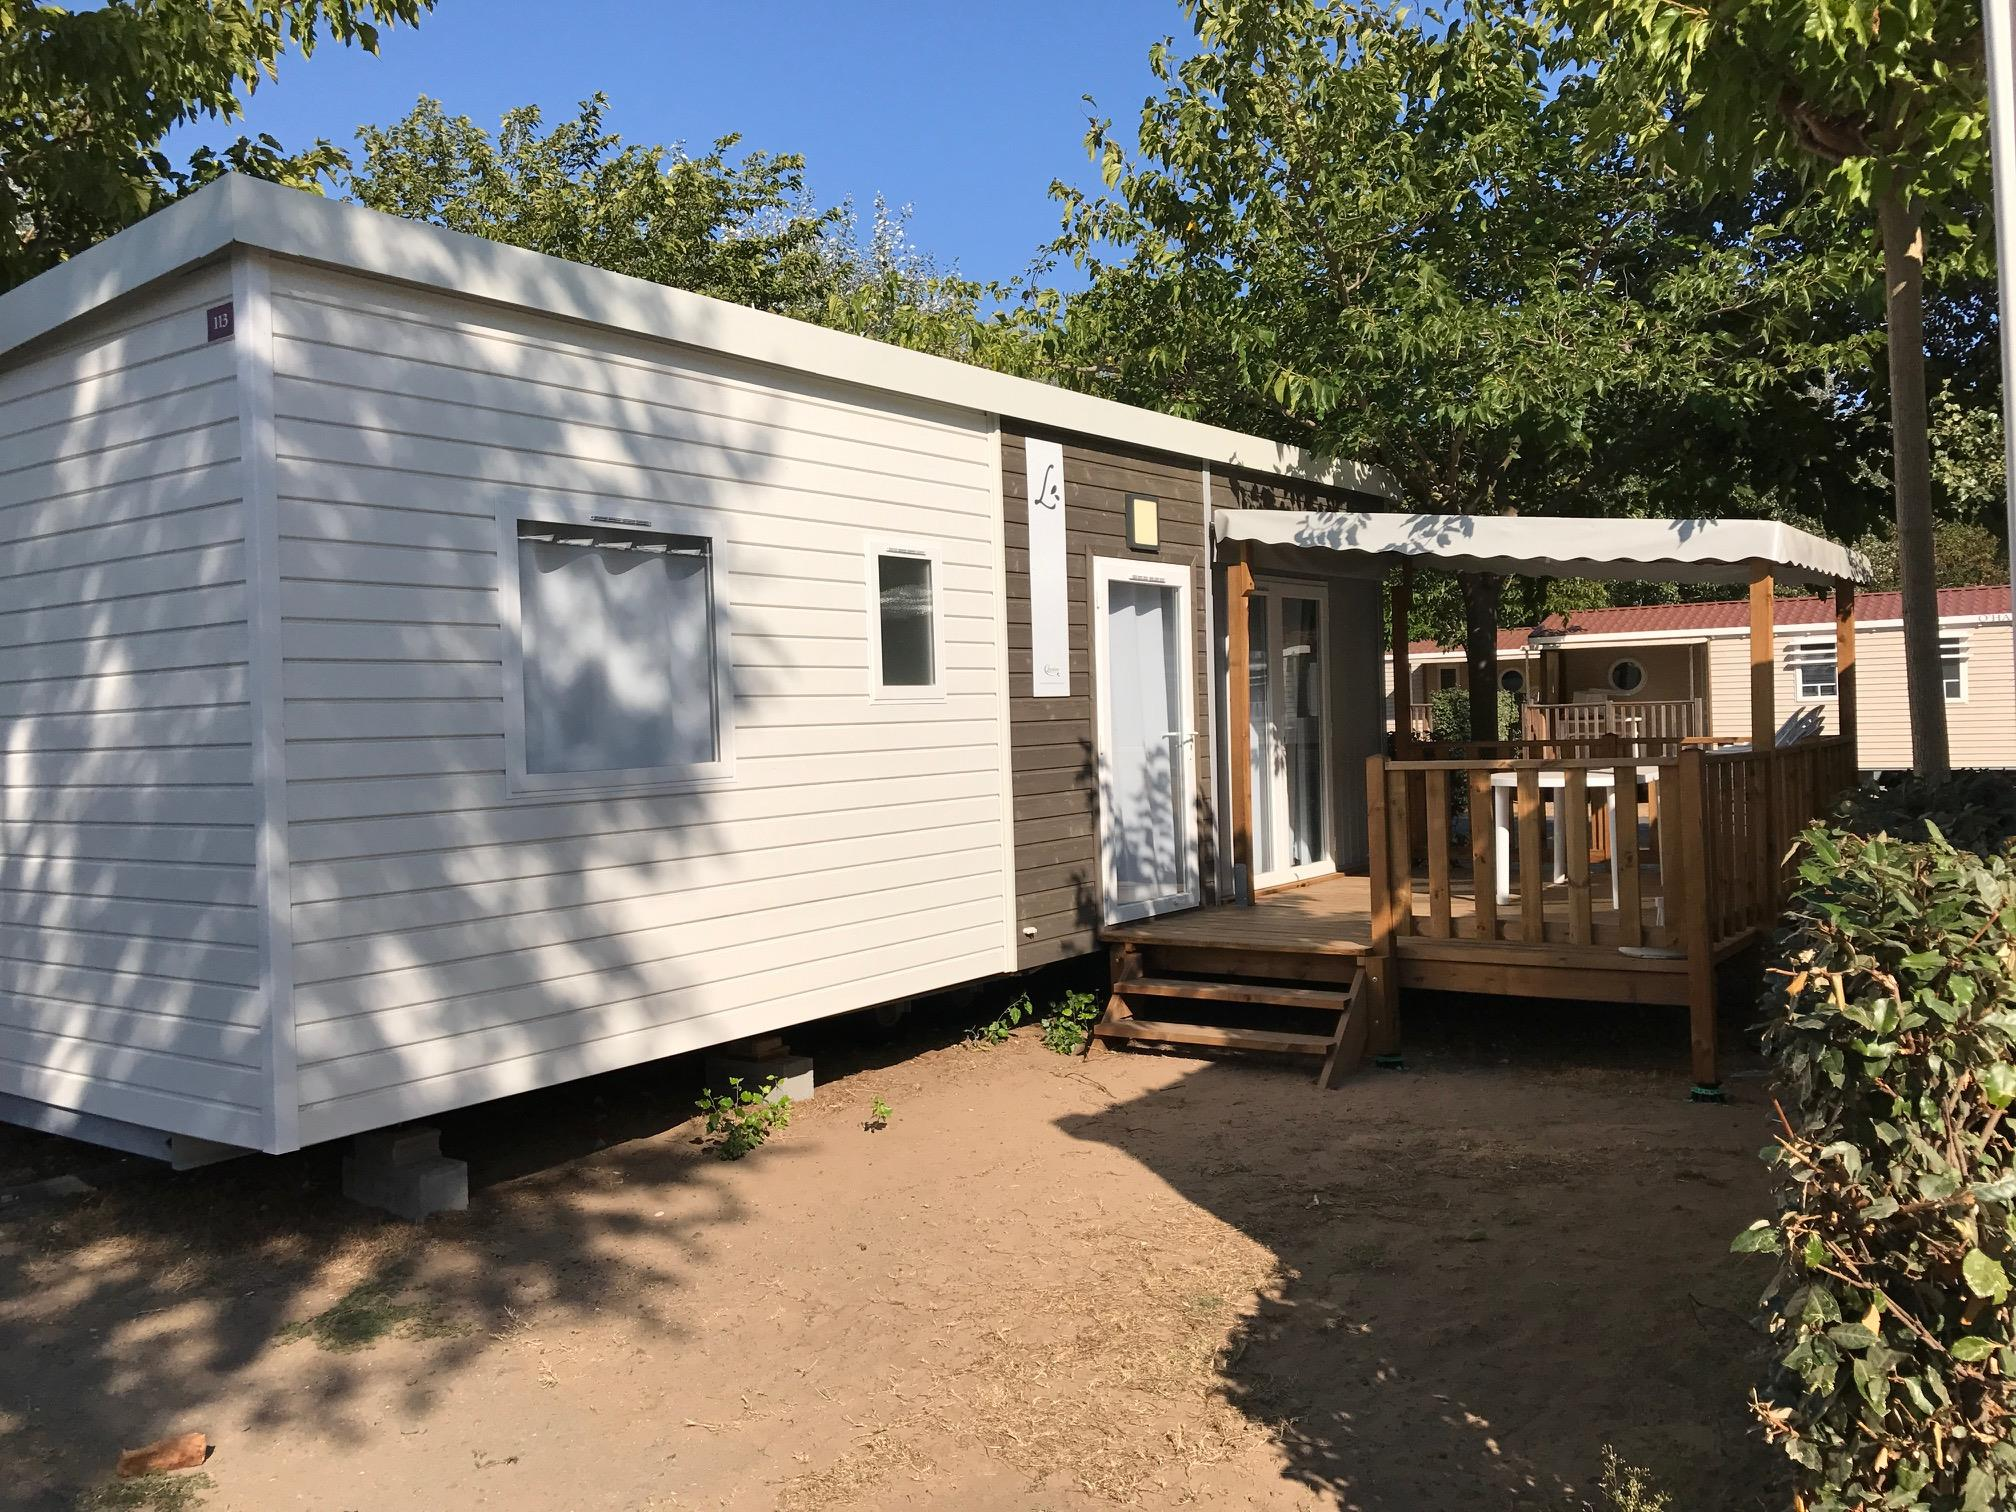 Accommodation - Mobilhome Declik 32M² Clim/Tv - Samstag - Camping Club Cayola